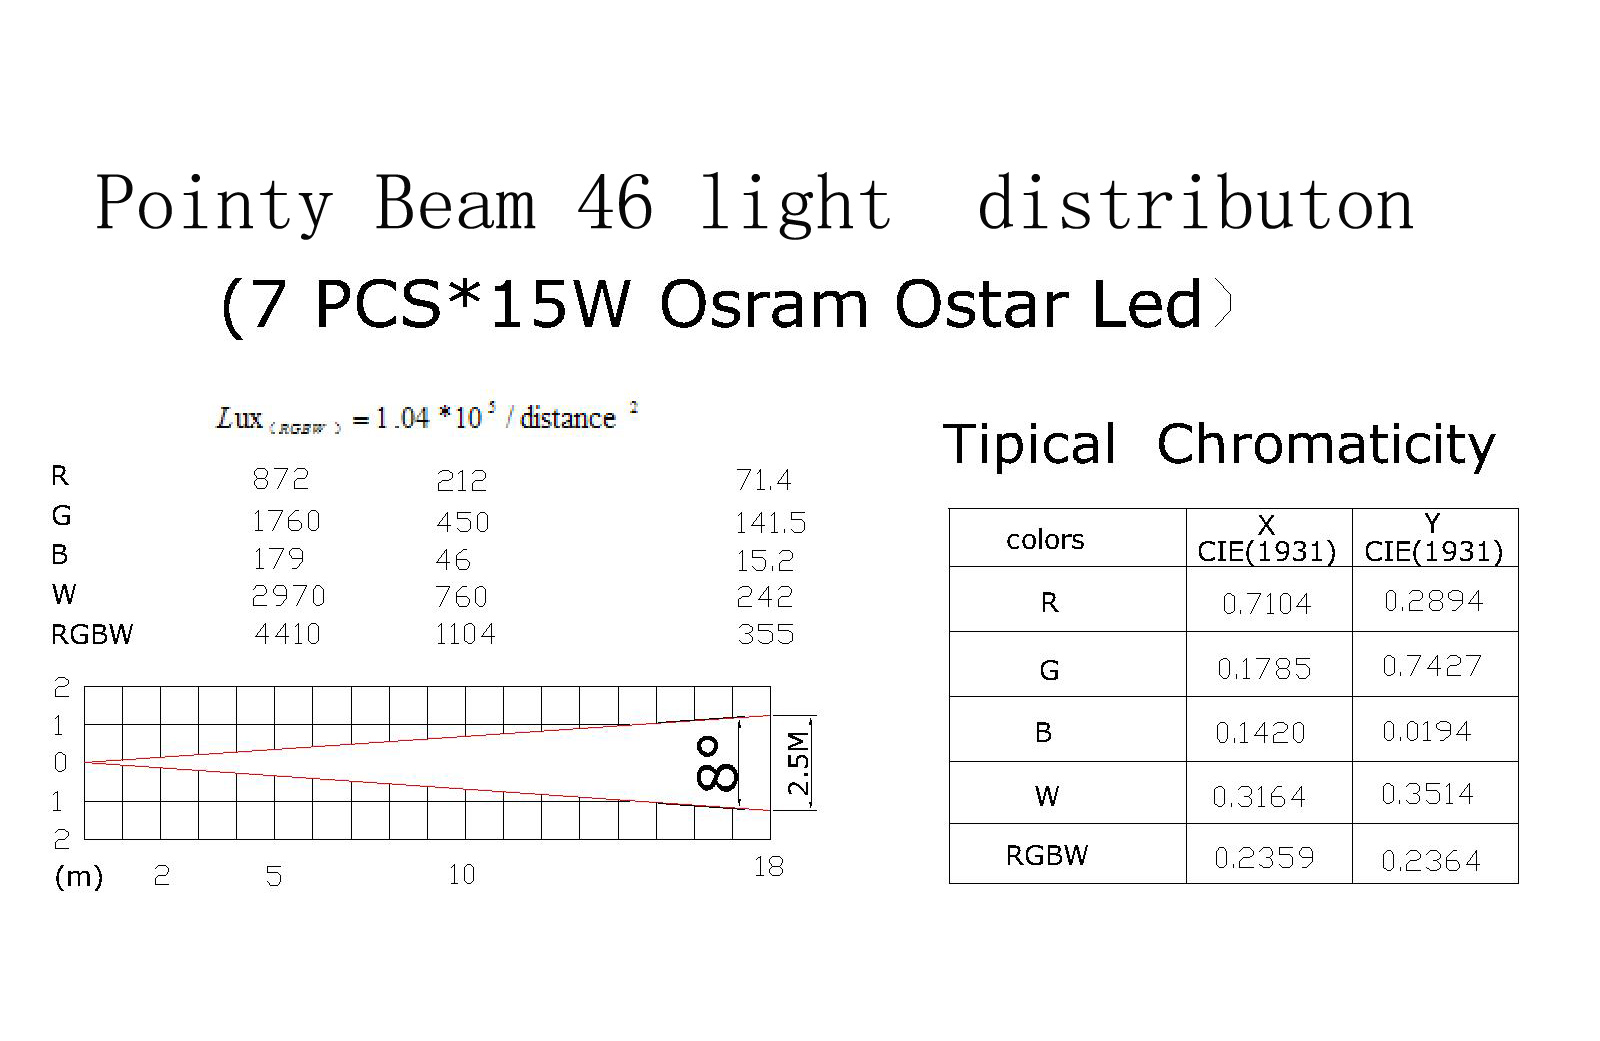 Pointy Beam 46 light distribution figure